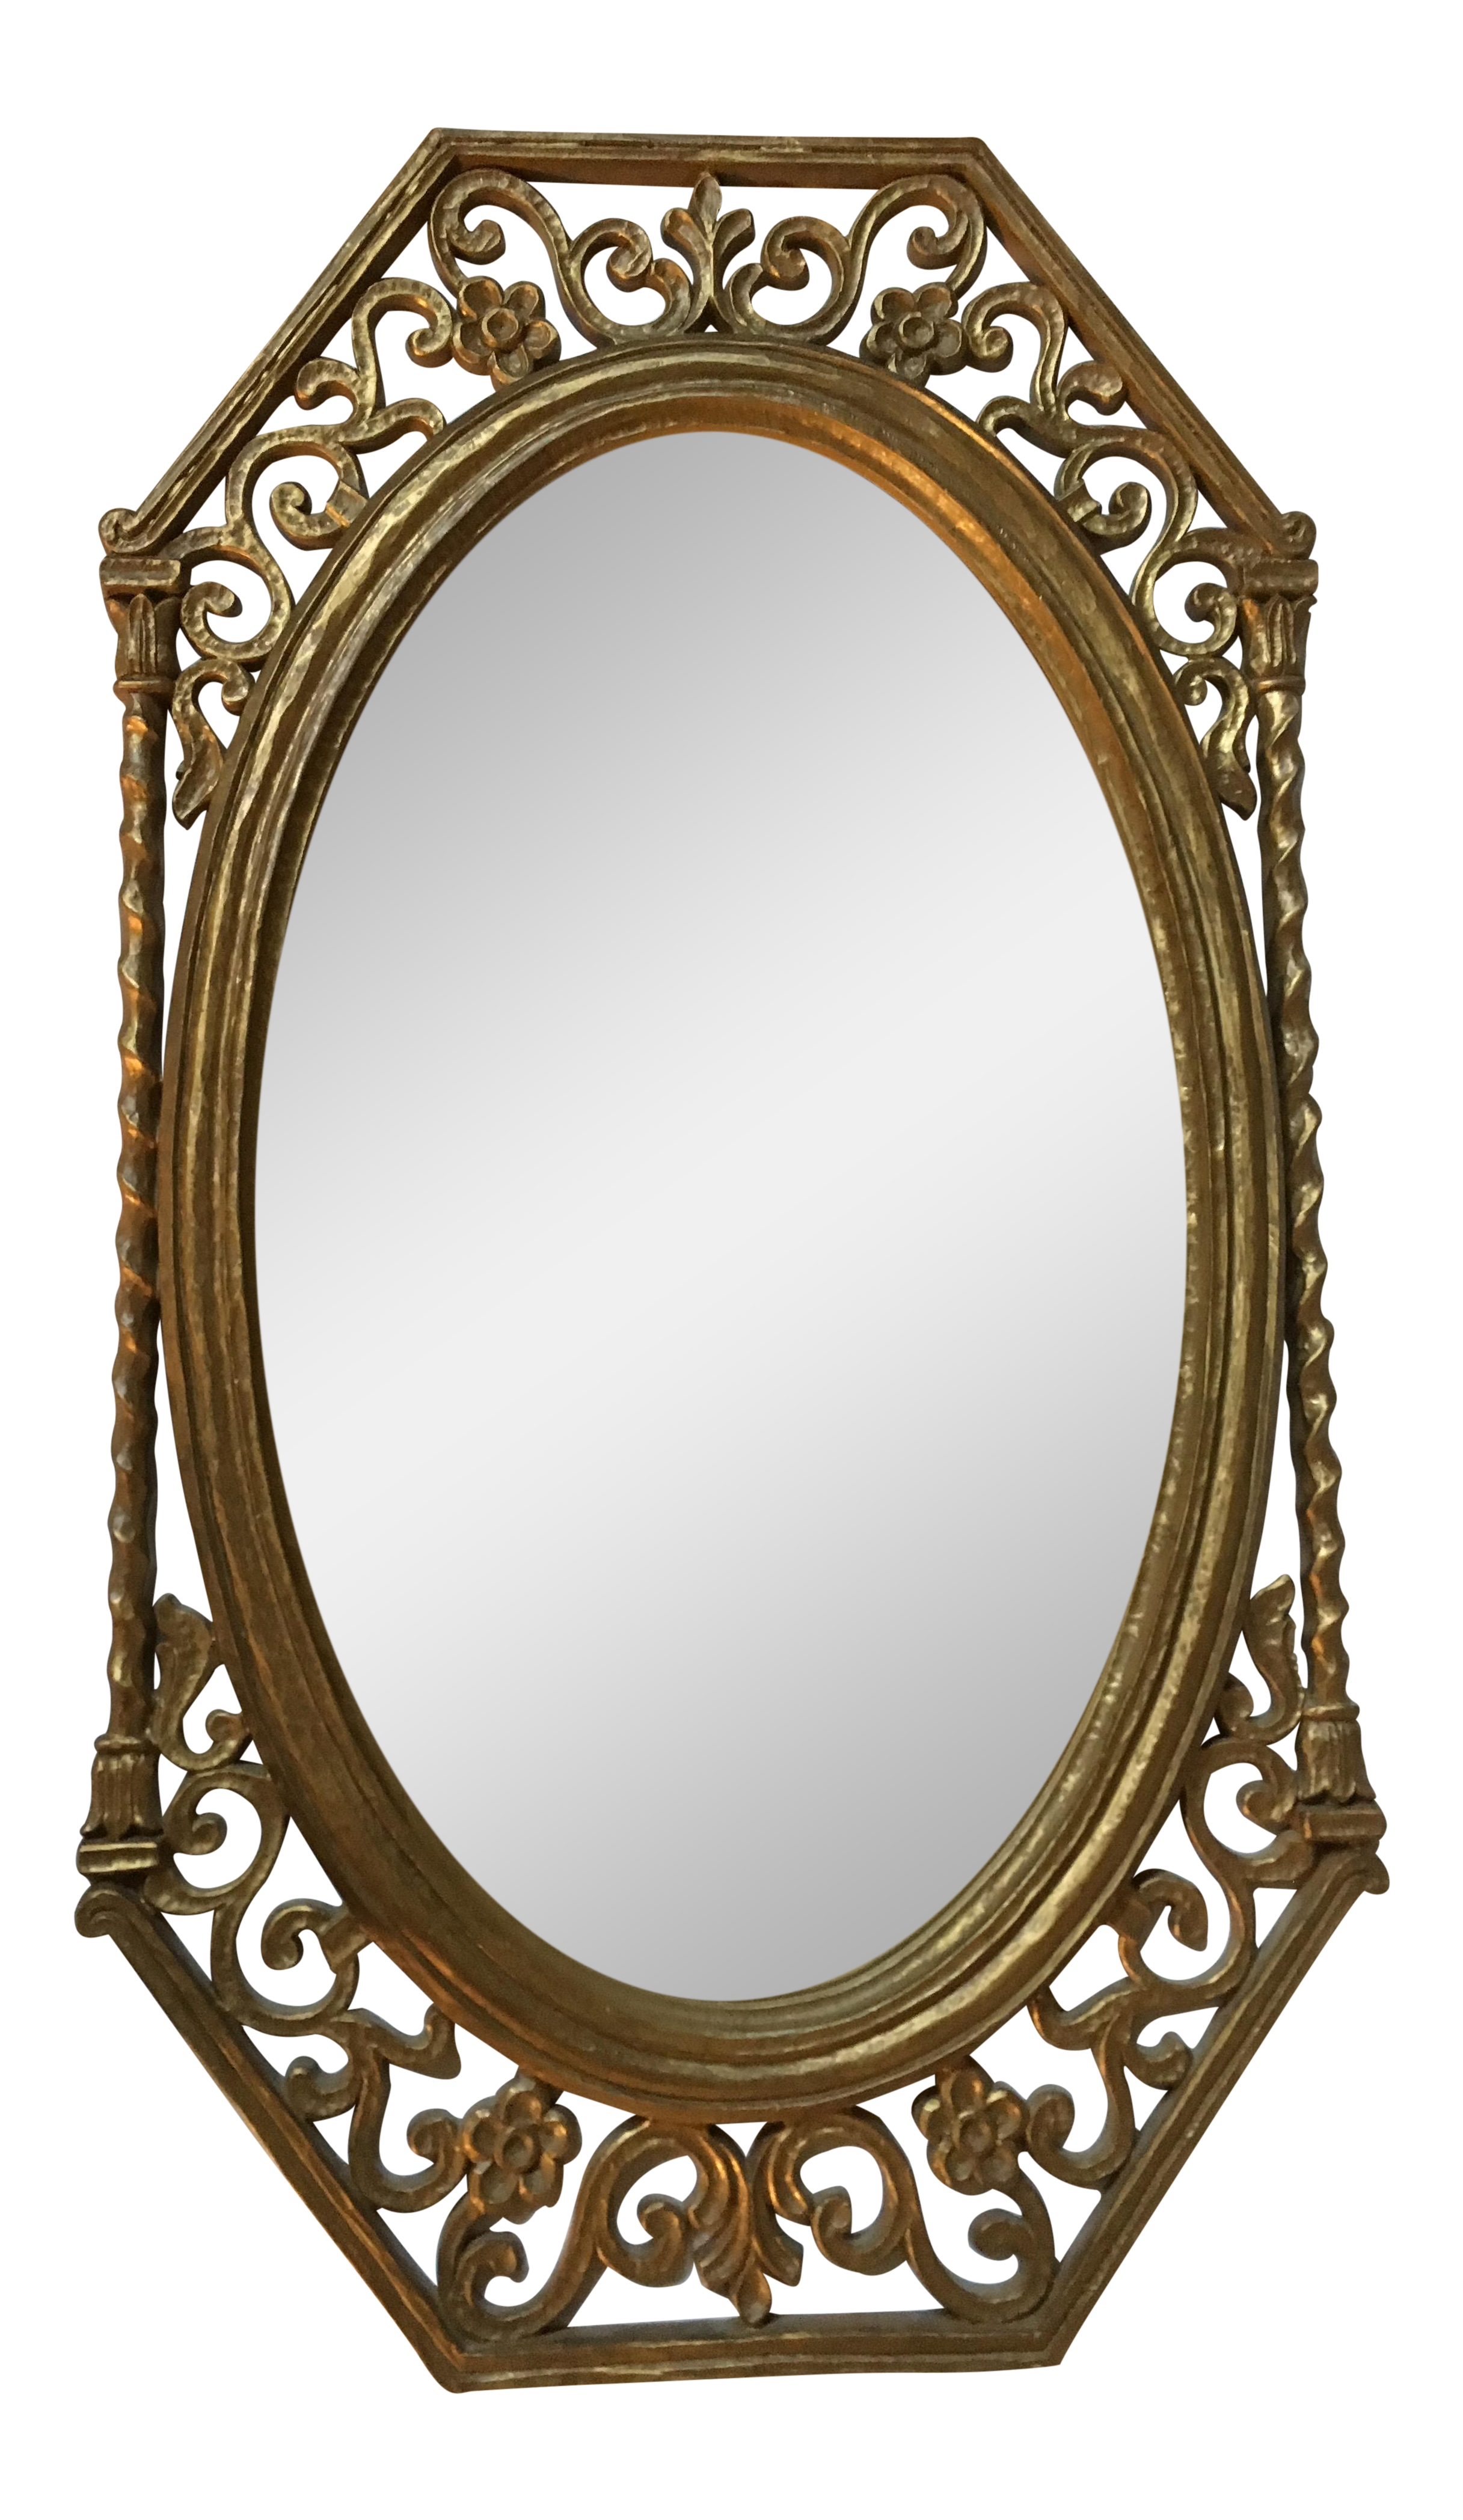 Lovely Vintage Syroco Oval Gold Gilt Mirror | Chairish PW42